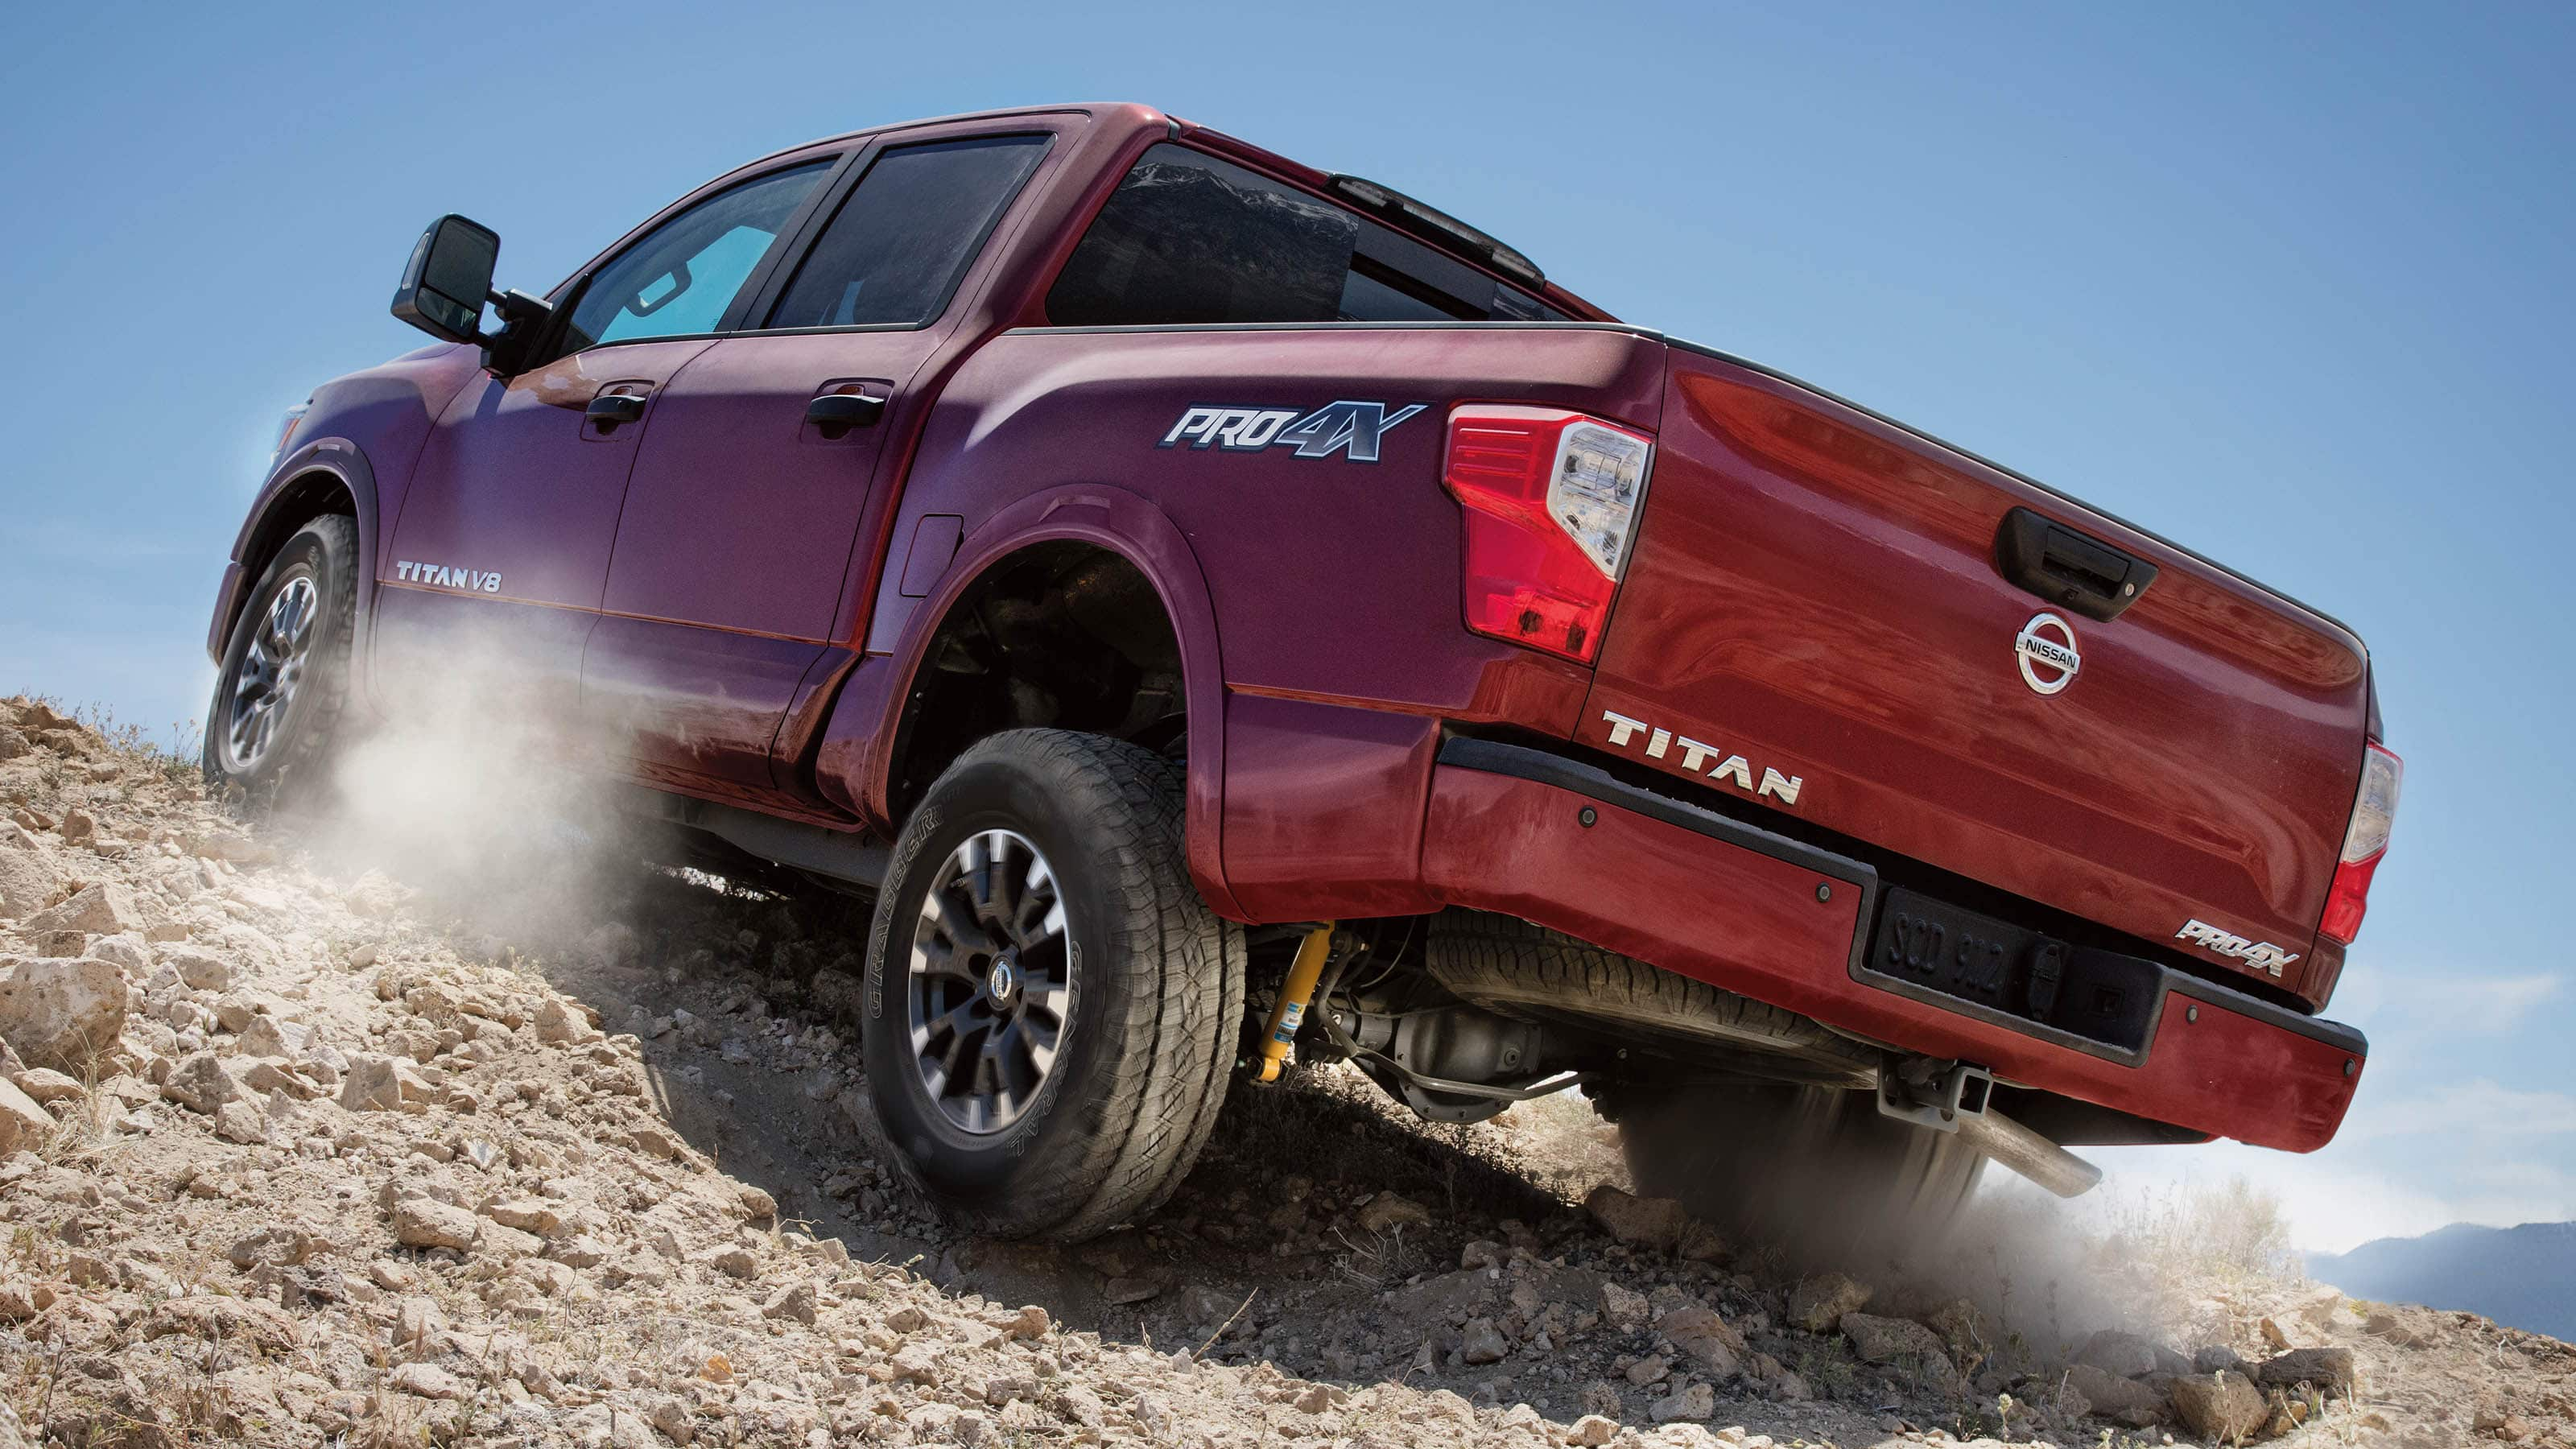 Buy, Lease, or Finance the 2019 Nissan Titan near Ocala FL